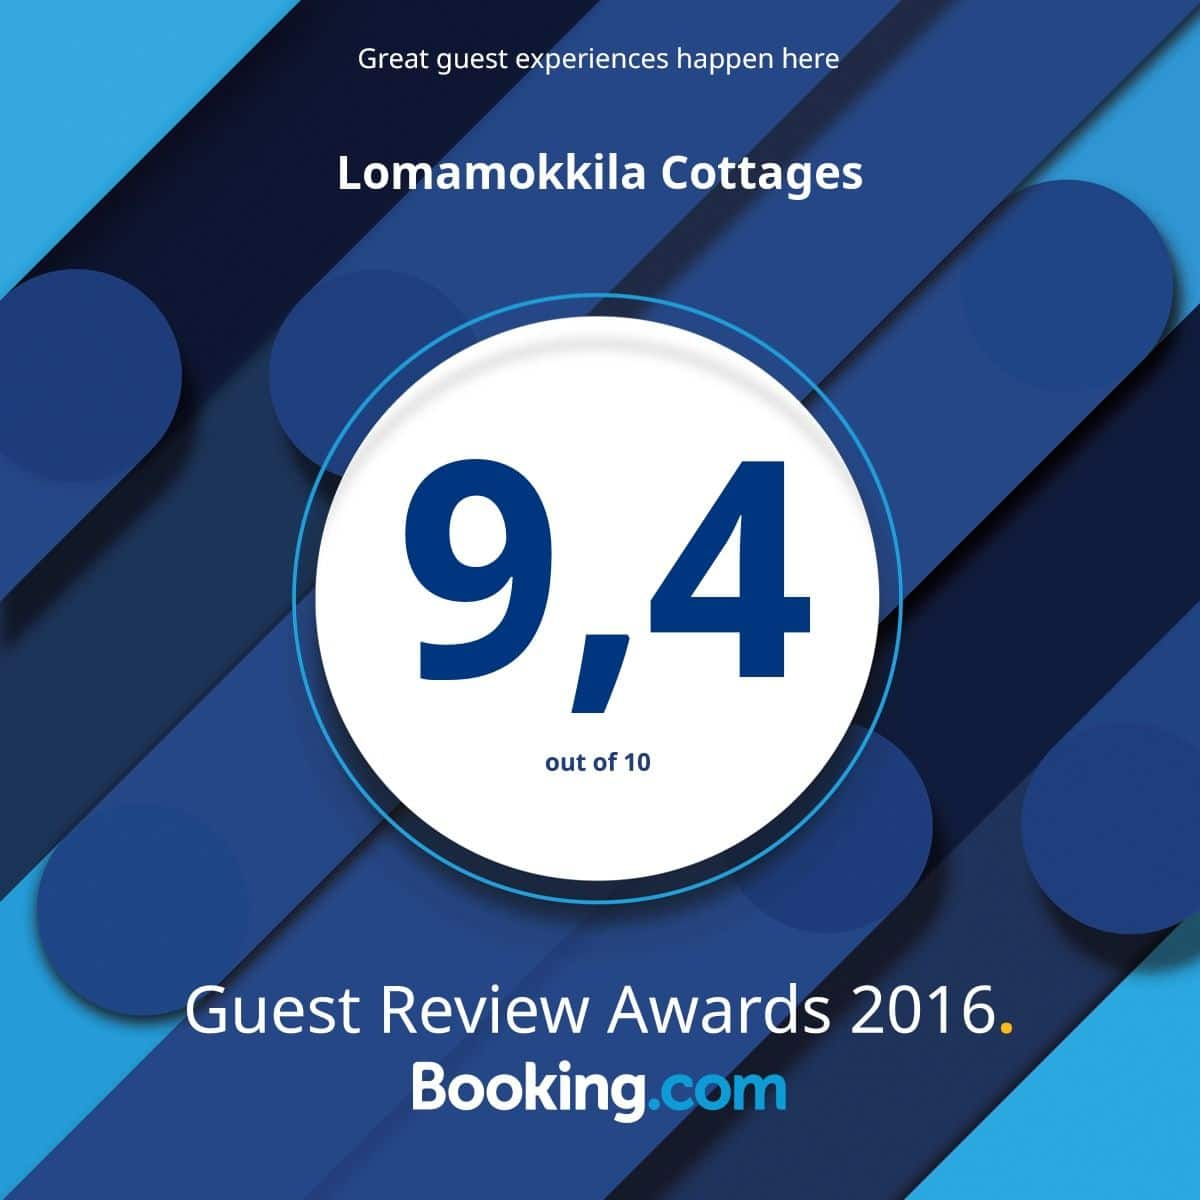 lomamokkila-cottages-booking-arviot-reviews-2016